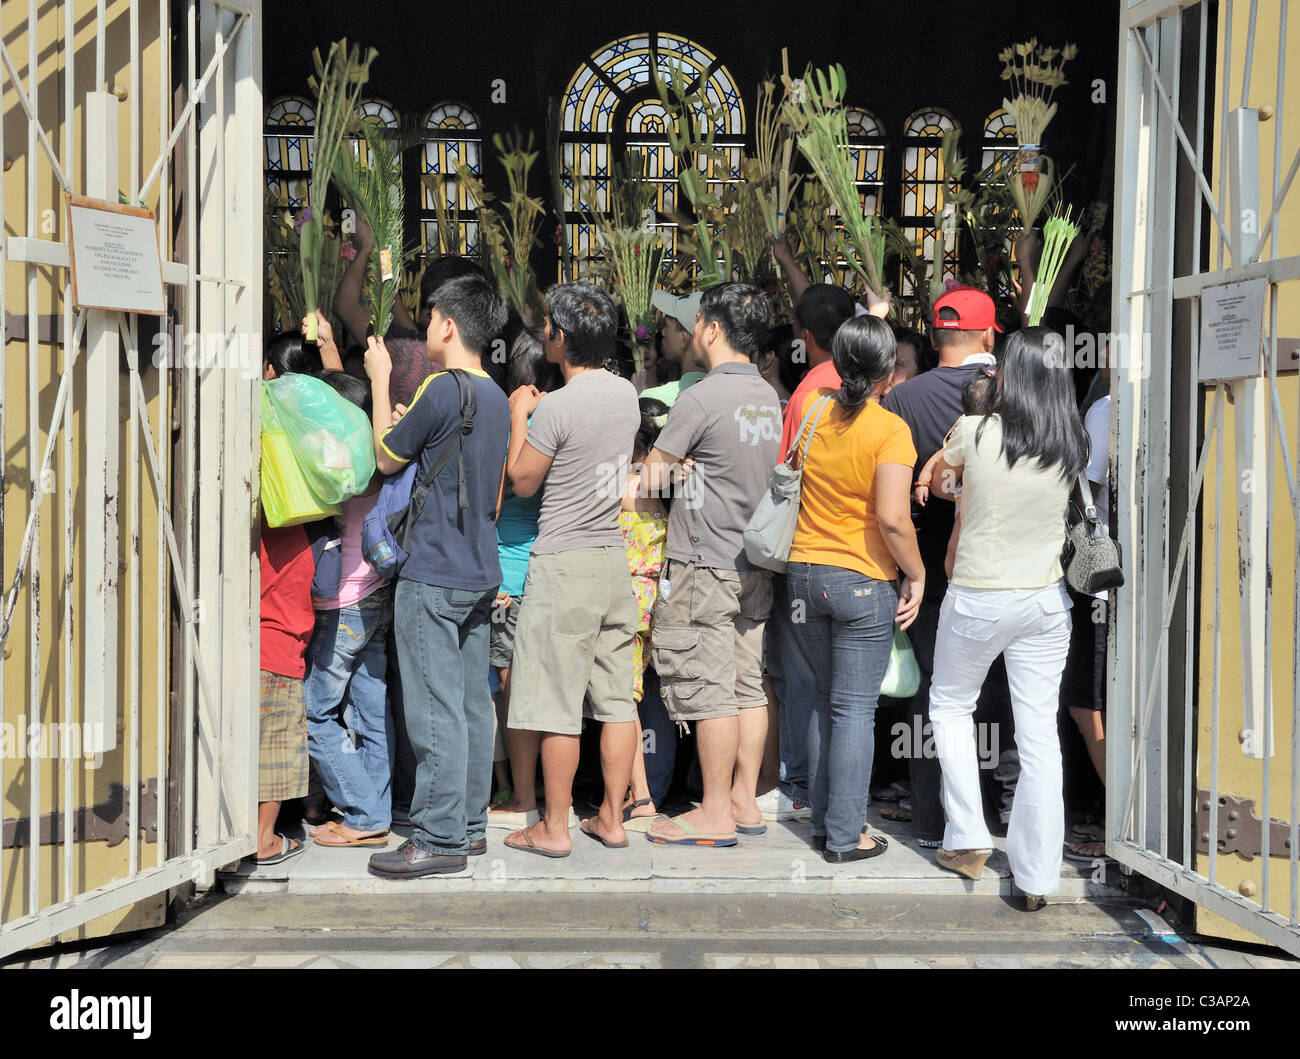 Filipinos crowd a church for the service on Palm Sunday - Stock Image